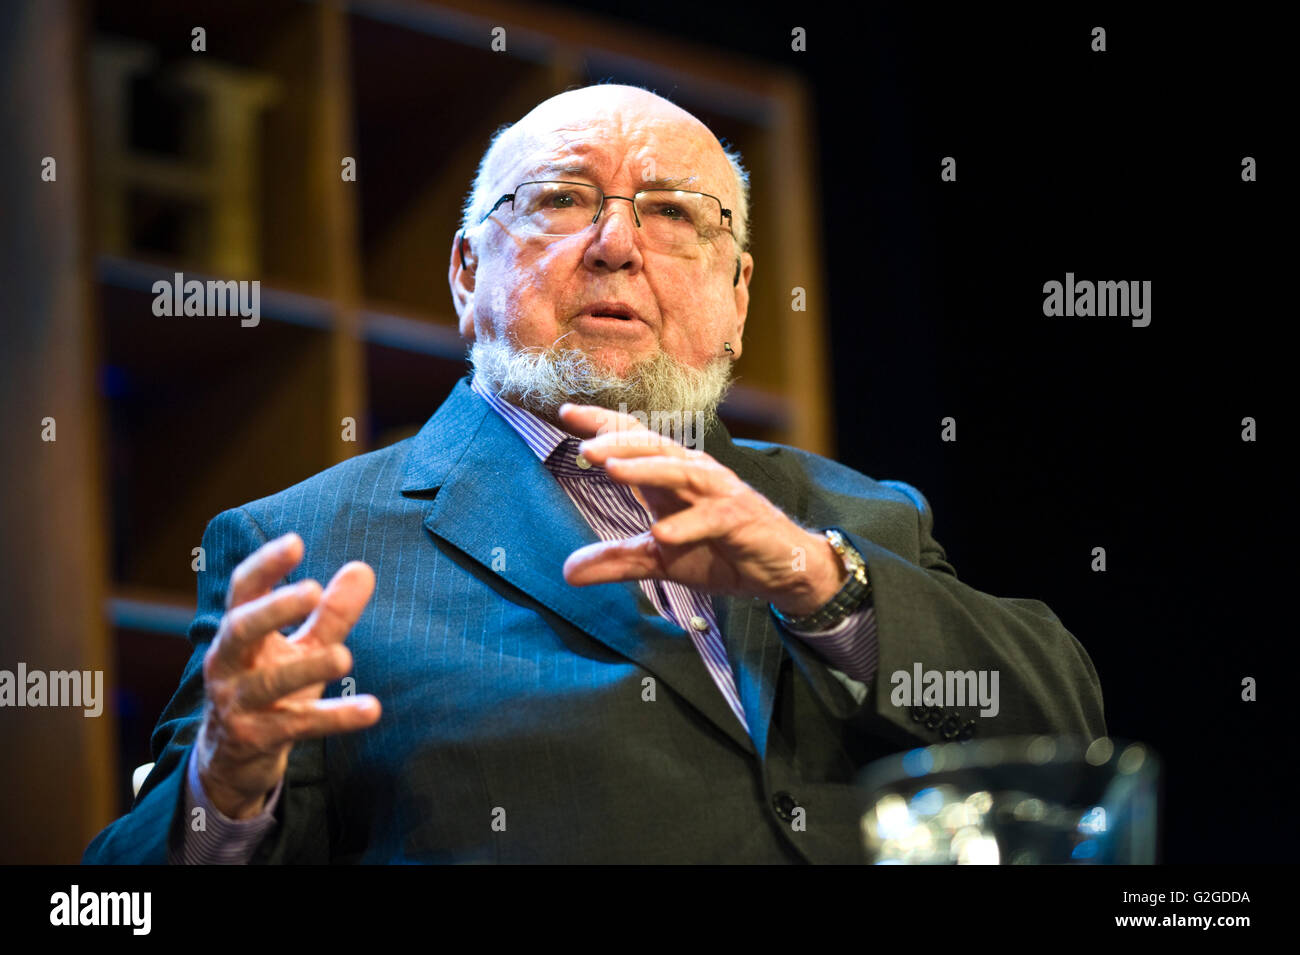 Thomas Keneally Australian novelist speaking on stage at Hay Festival 2016 - Stock Image